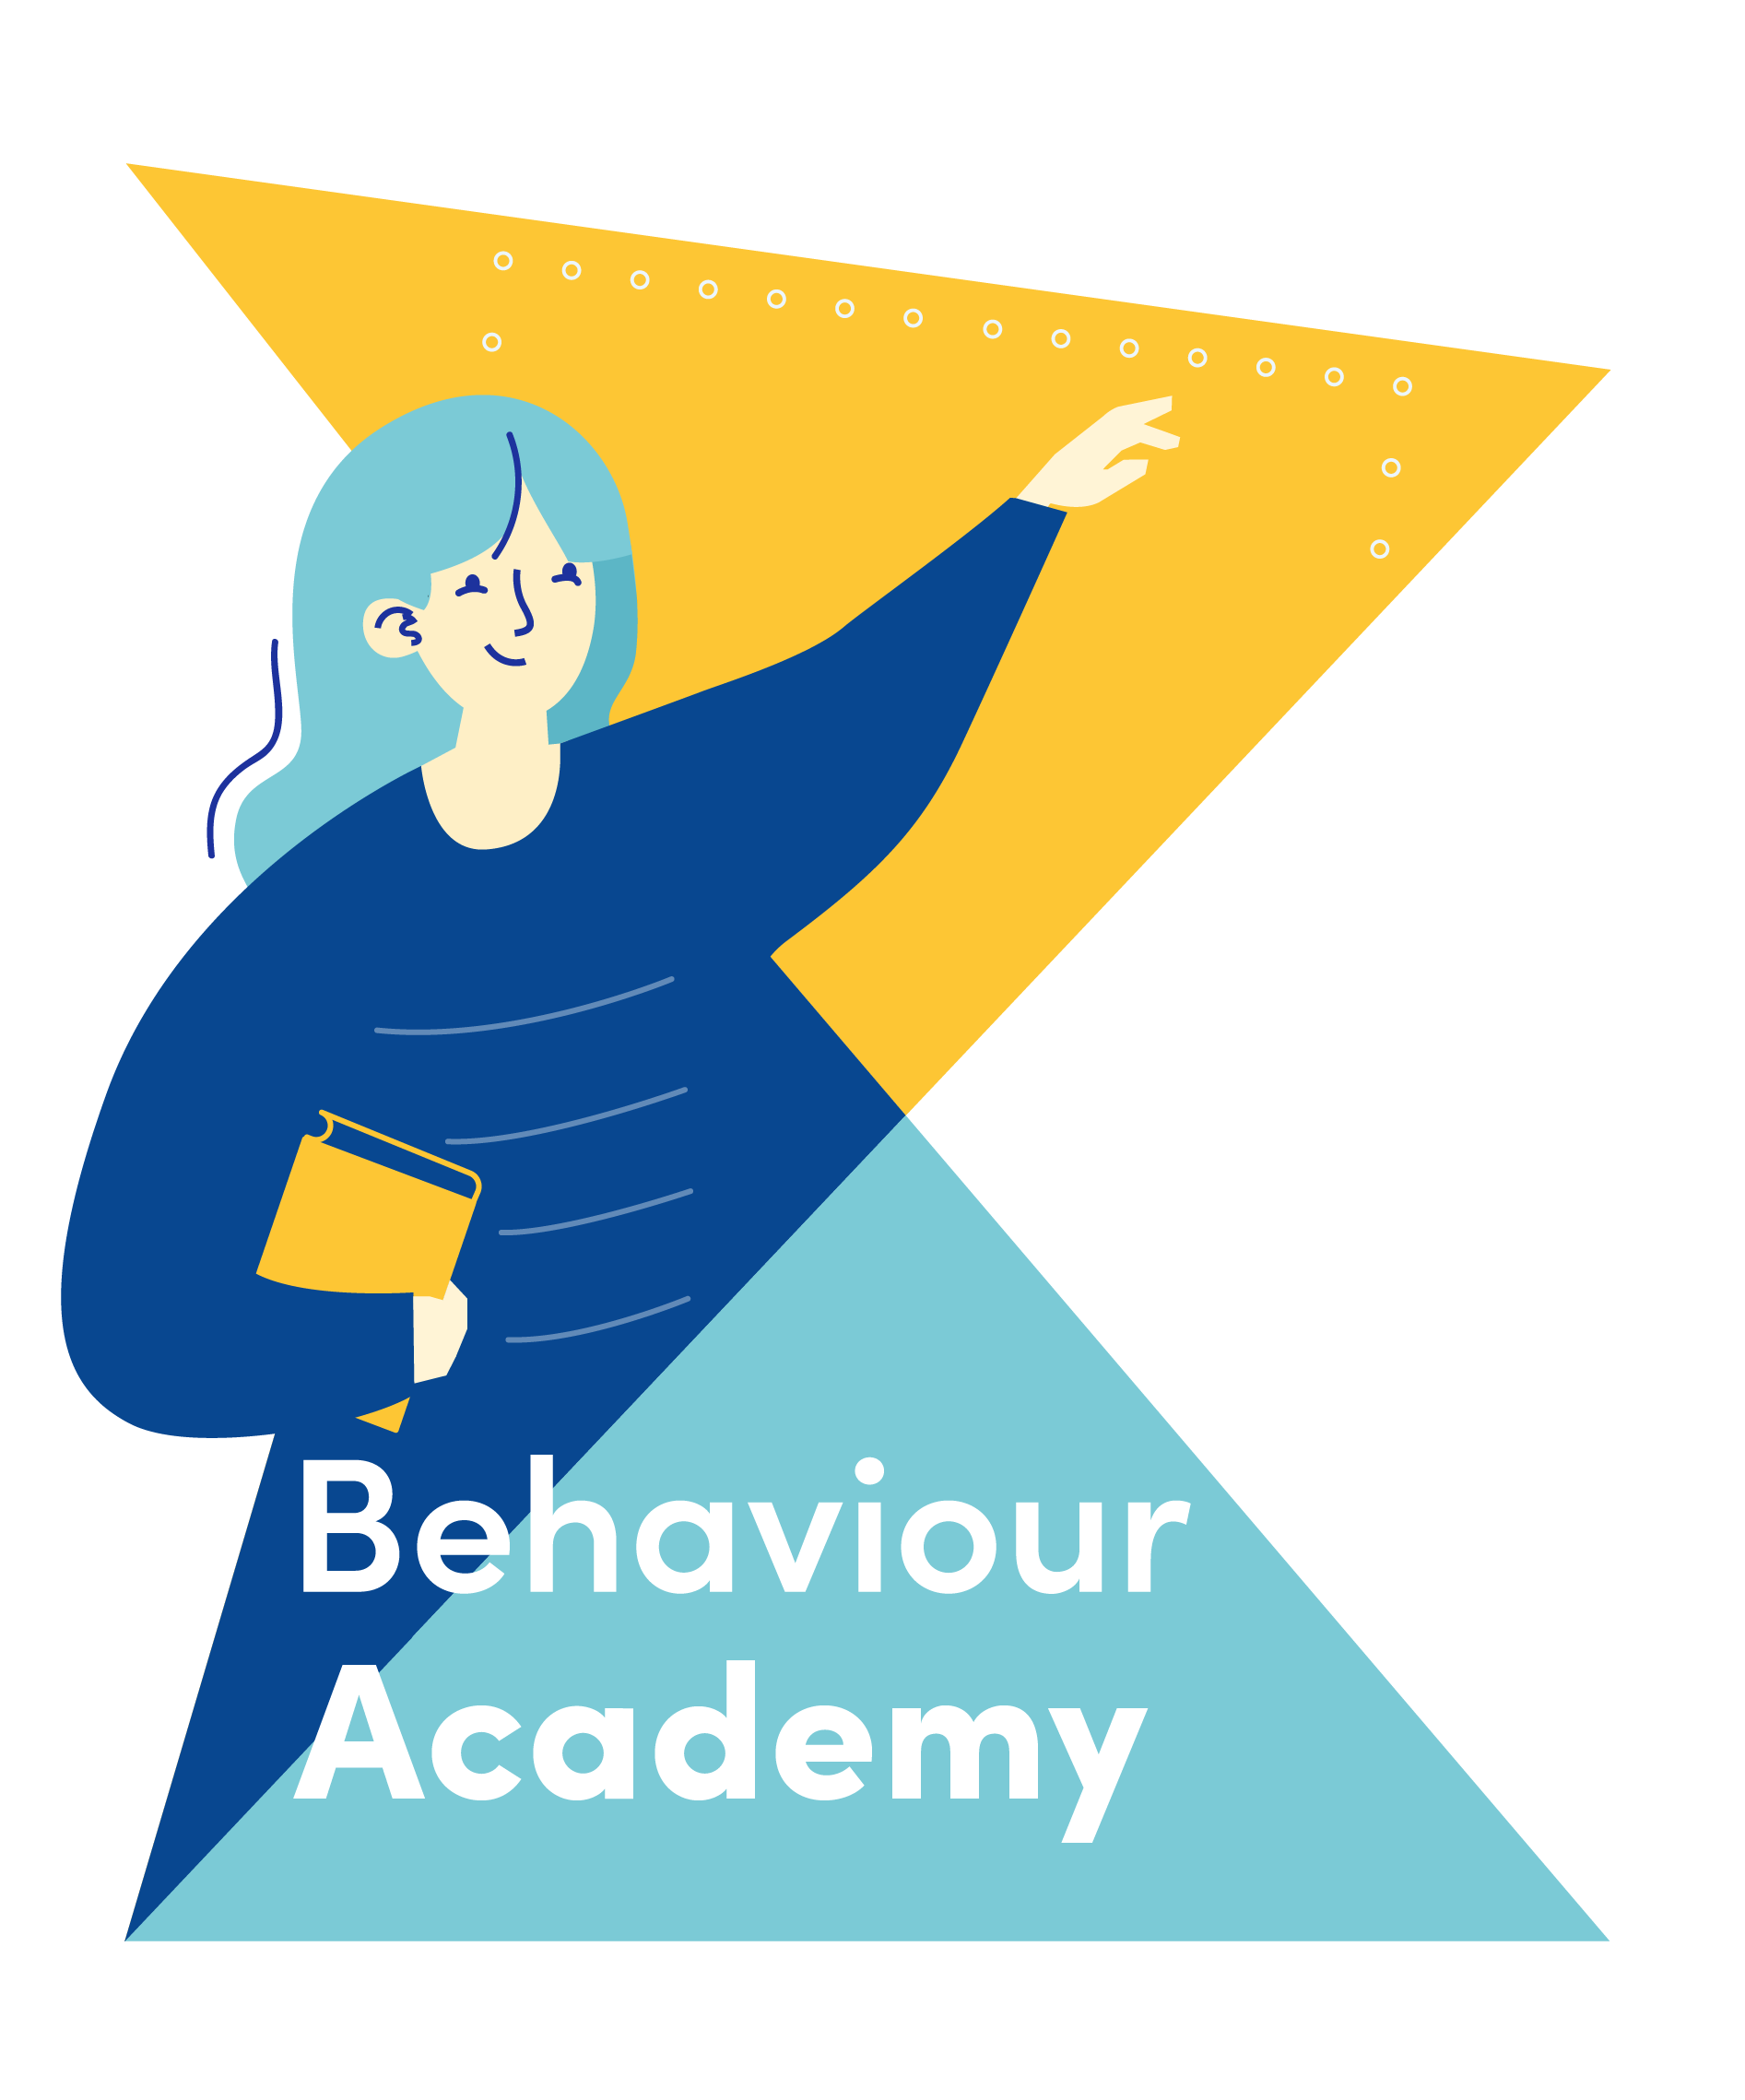 Latest behaviour courses for creative teams, problem solvers and people-first businesses. Learn how to use Behavioural Science in your projects.